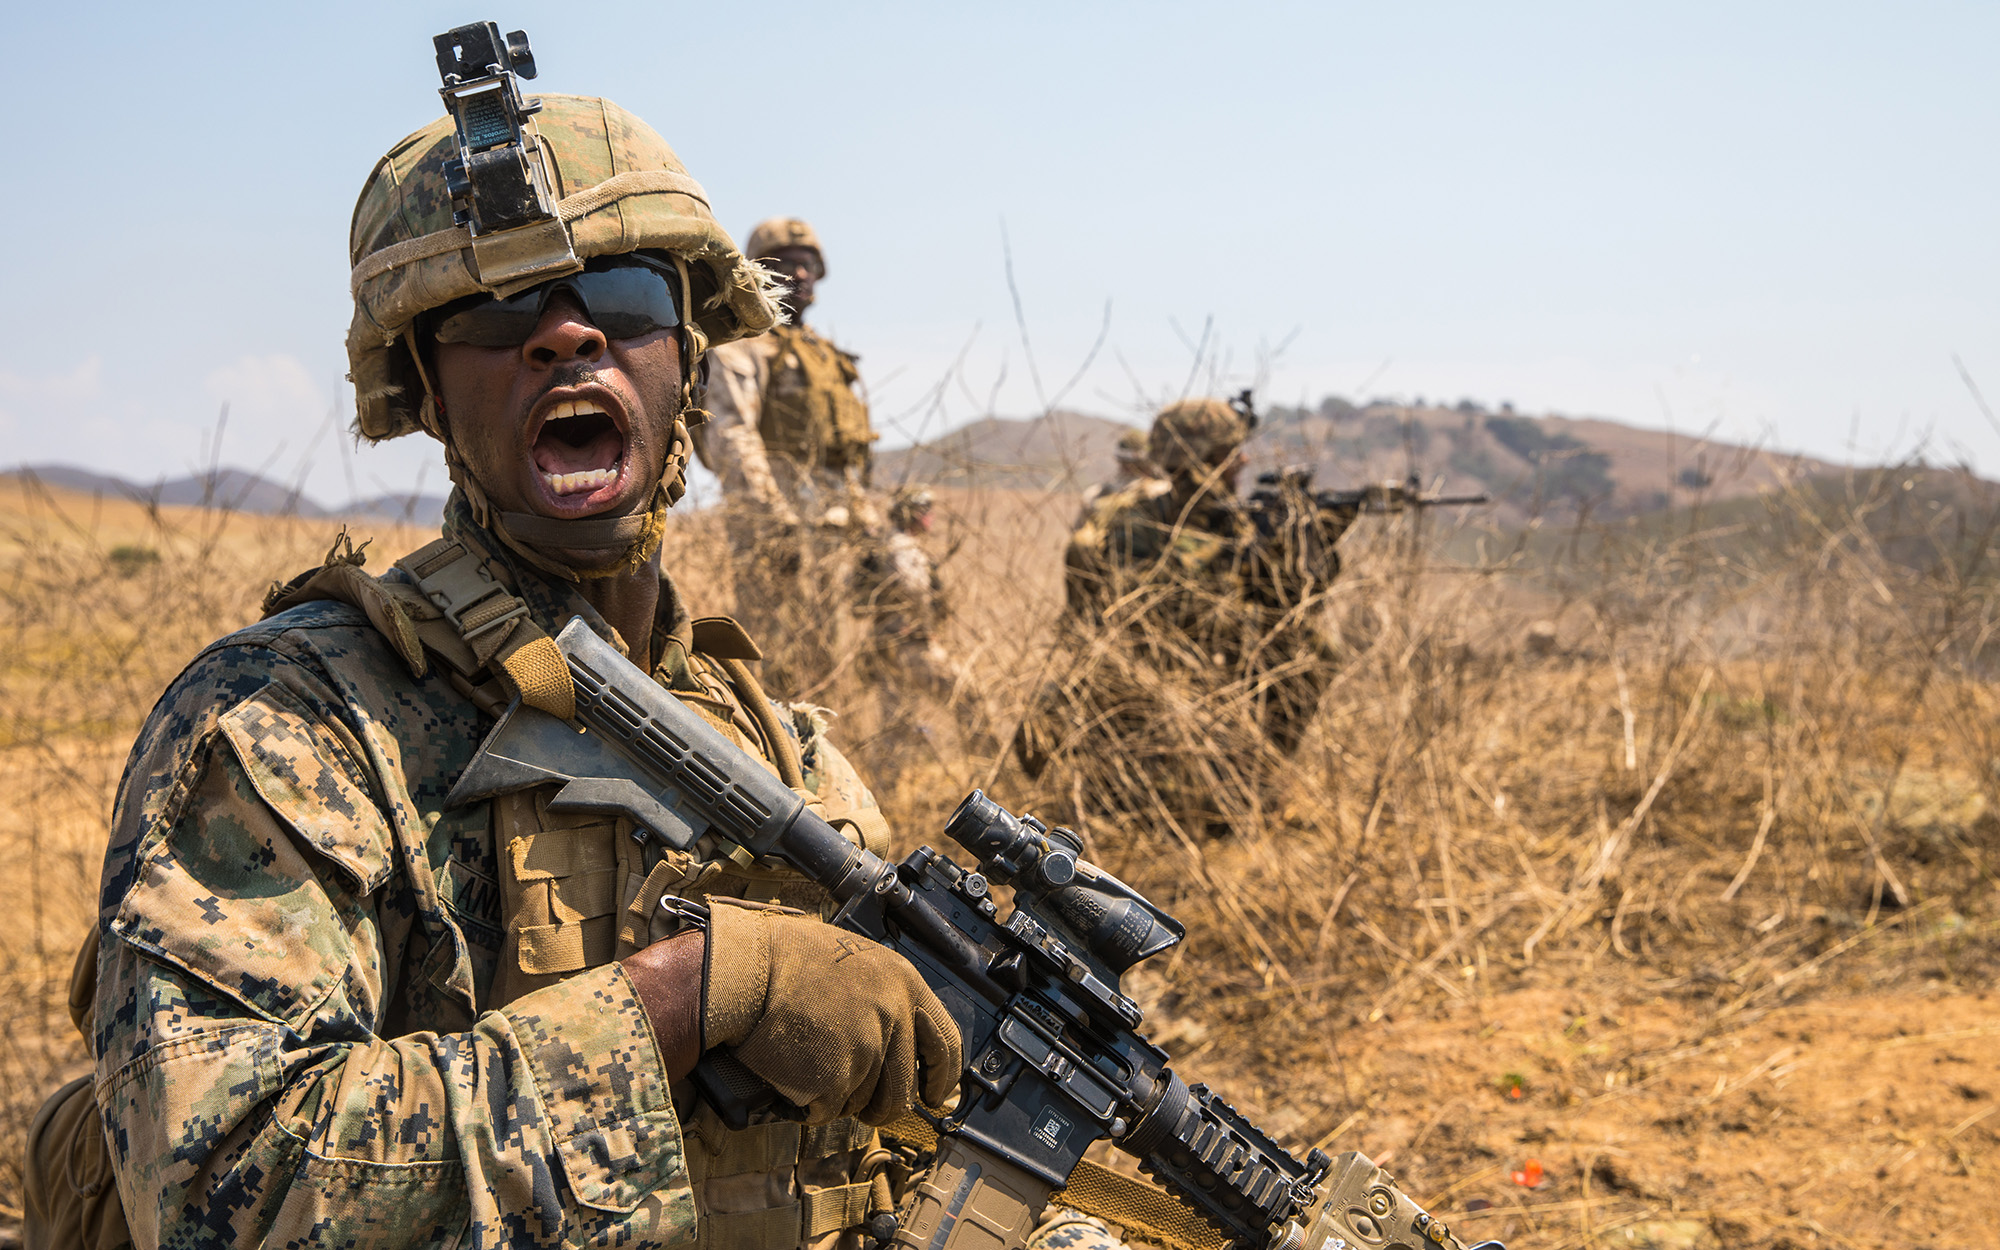 Marine Corps Lance Cpl. Joshua Anderson relays commands to his fire team while conducting offensive operations during the Supersquad 2020 Competition at Marine Corps Base Camp Pendleton, Calif., Aug. 20, 2020. (Staff Sgt. Kyle C. Talbot/Marine Corps)